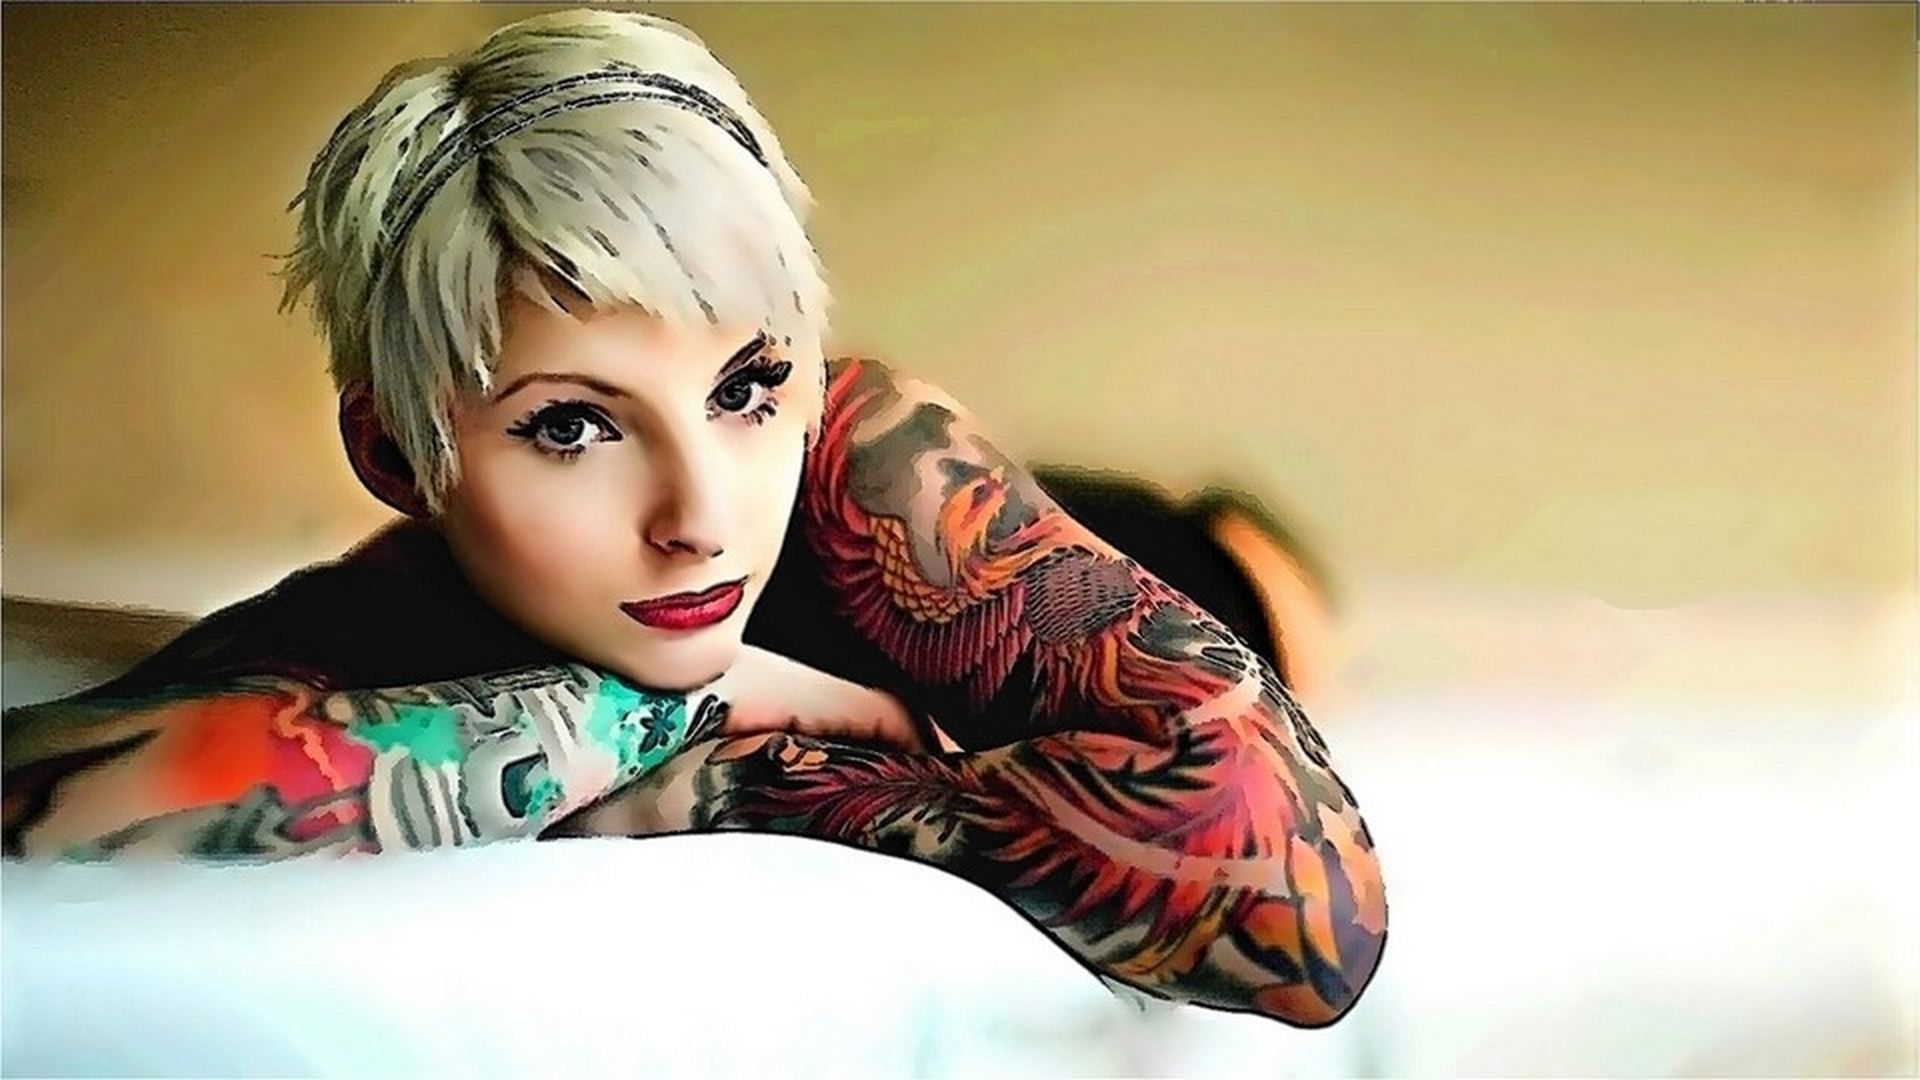 Tattoo Page Of Mobile Wallpapers Hd Phone Wallpapers Girl